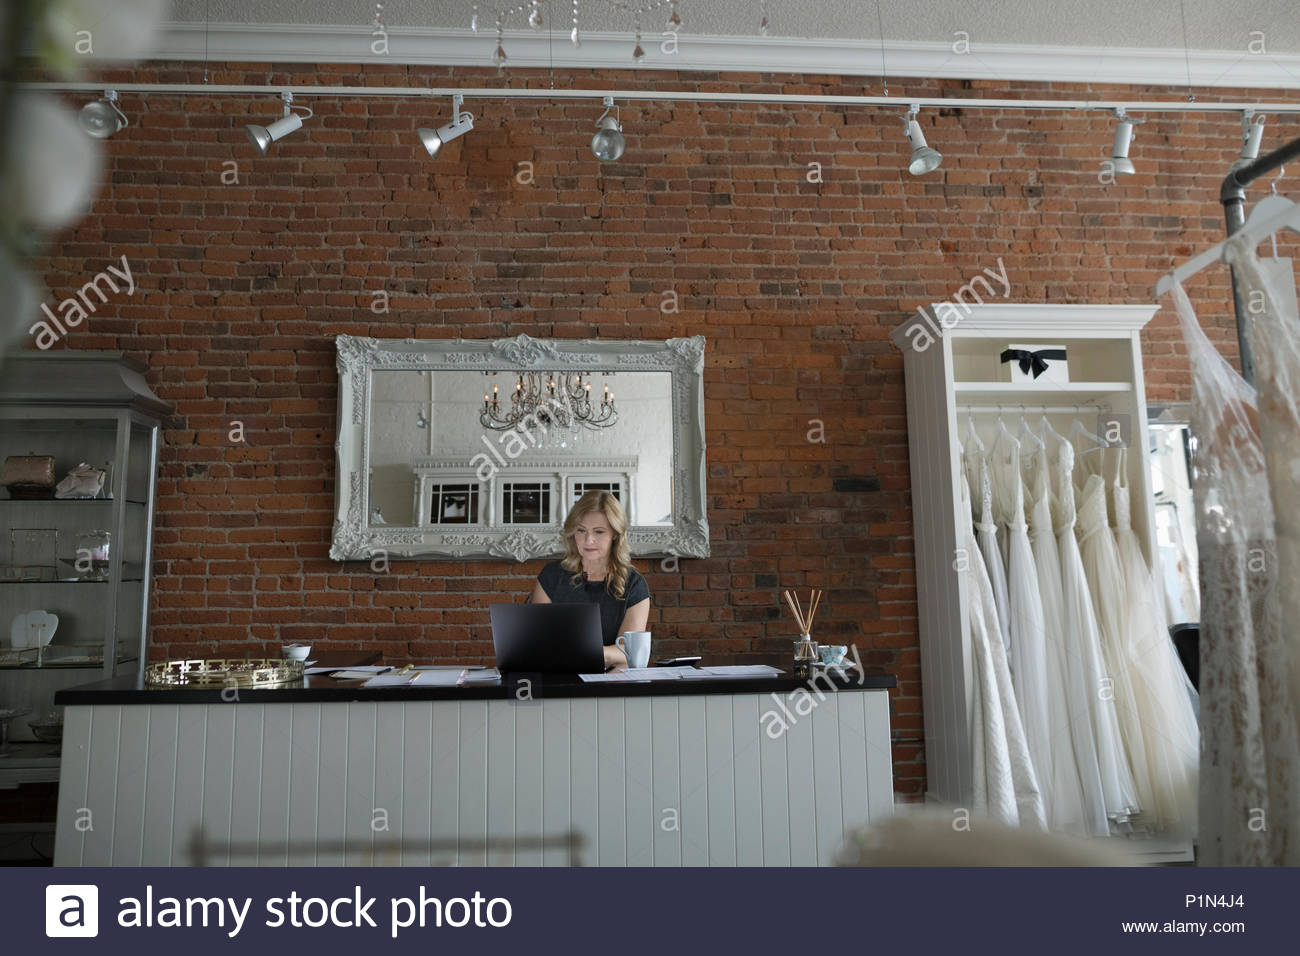 Bridal boutique owner working at laptop - Stock Image